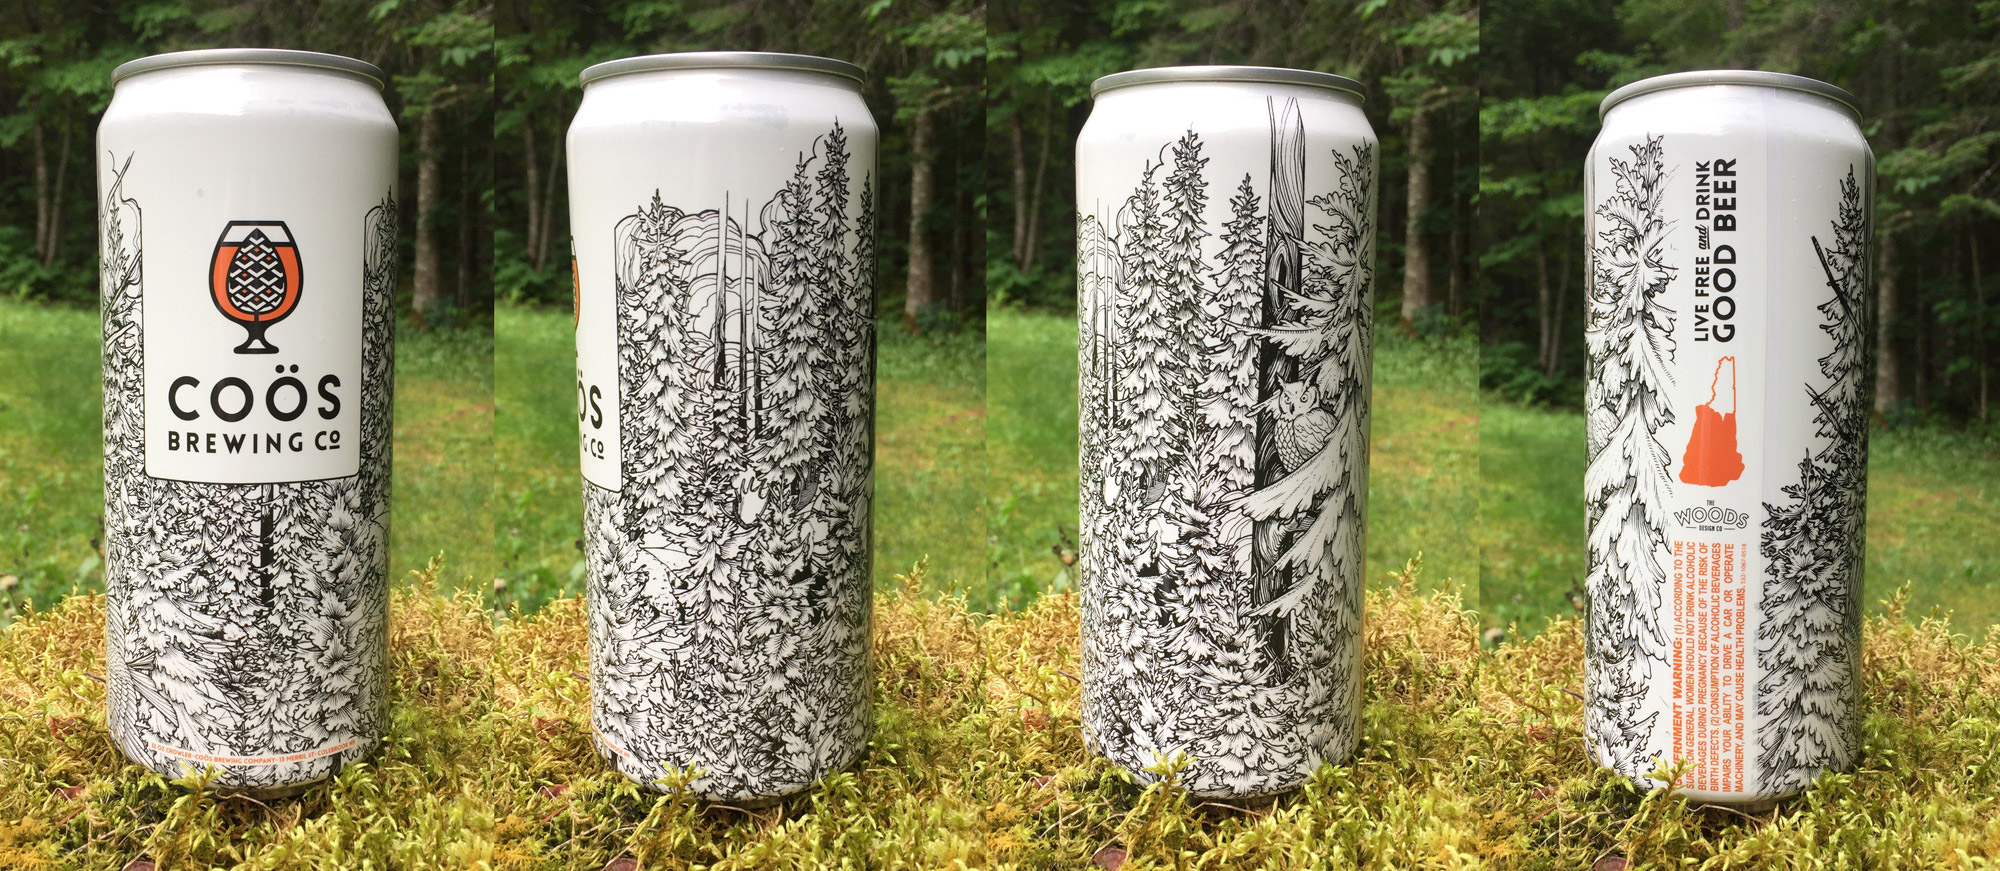 cans-on-moss.jpg